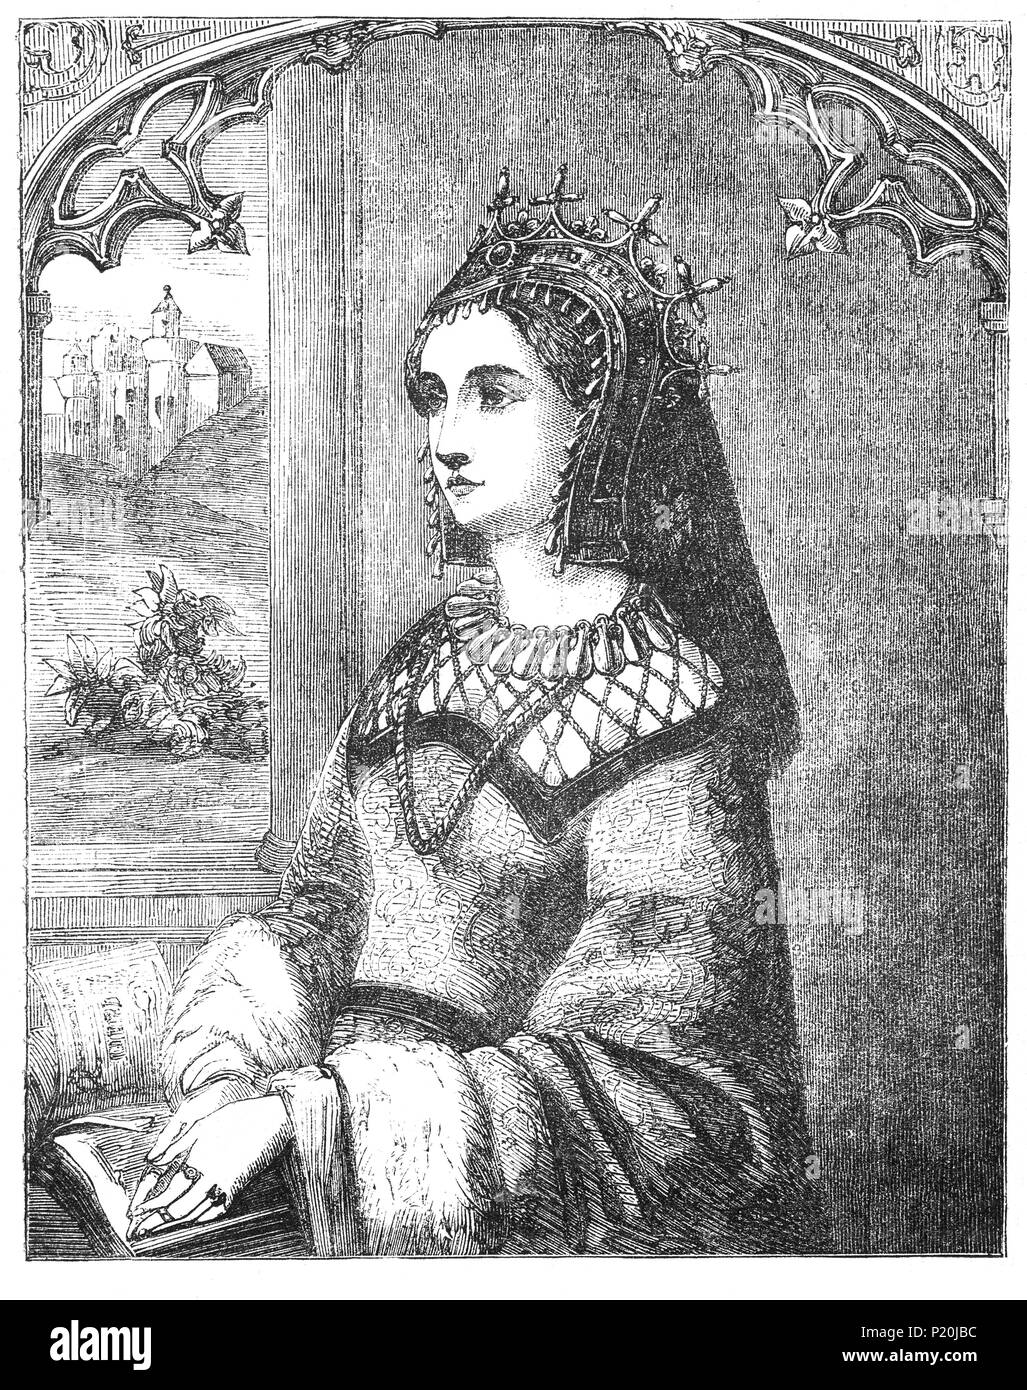 Margaret of Anjou (1430-1482) was the Queen of England by marriage to King Henry VI from 1445 to 1461 and again from 1470 to 1471. She was a principal figure in the Wars of the Roses and at times personally led the Lancastrian faction. Owing to her husband's frequent bouts of insanity, Margaret ruled the kingdom and it was she who called for a Great Council in 1455 that excluded the Yorkist faction headed by Richard of York, 3rd Duke of York, the spark that ignited a civil conflict that lasted for more than 30 years. After defeat at Tewkesbury she lived in France and died there in 1482. Stock Photo